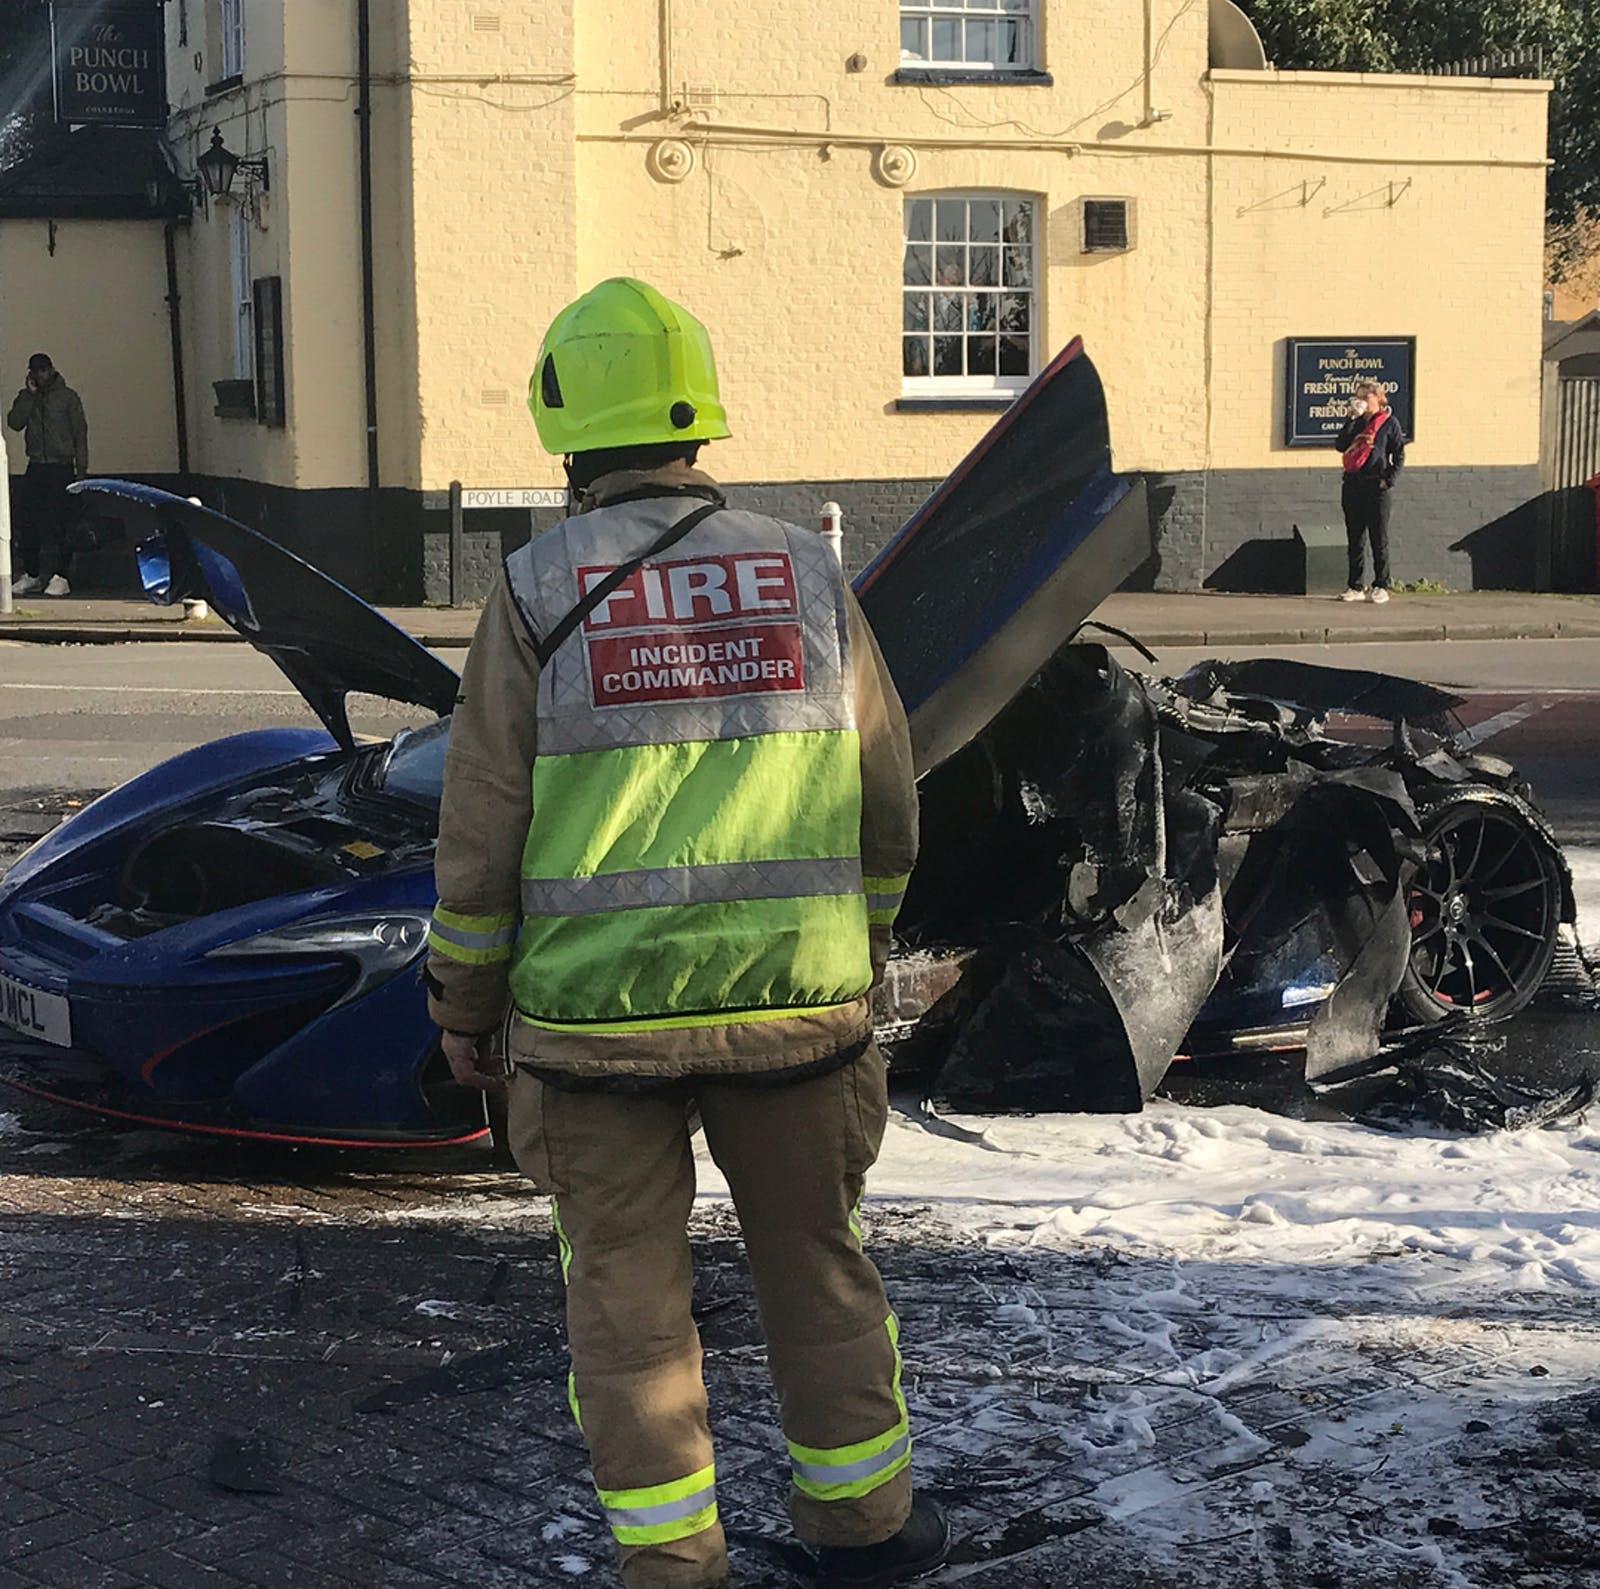 Mclaren P Fire Aftermath